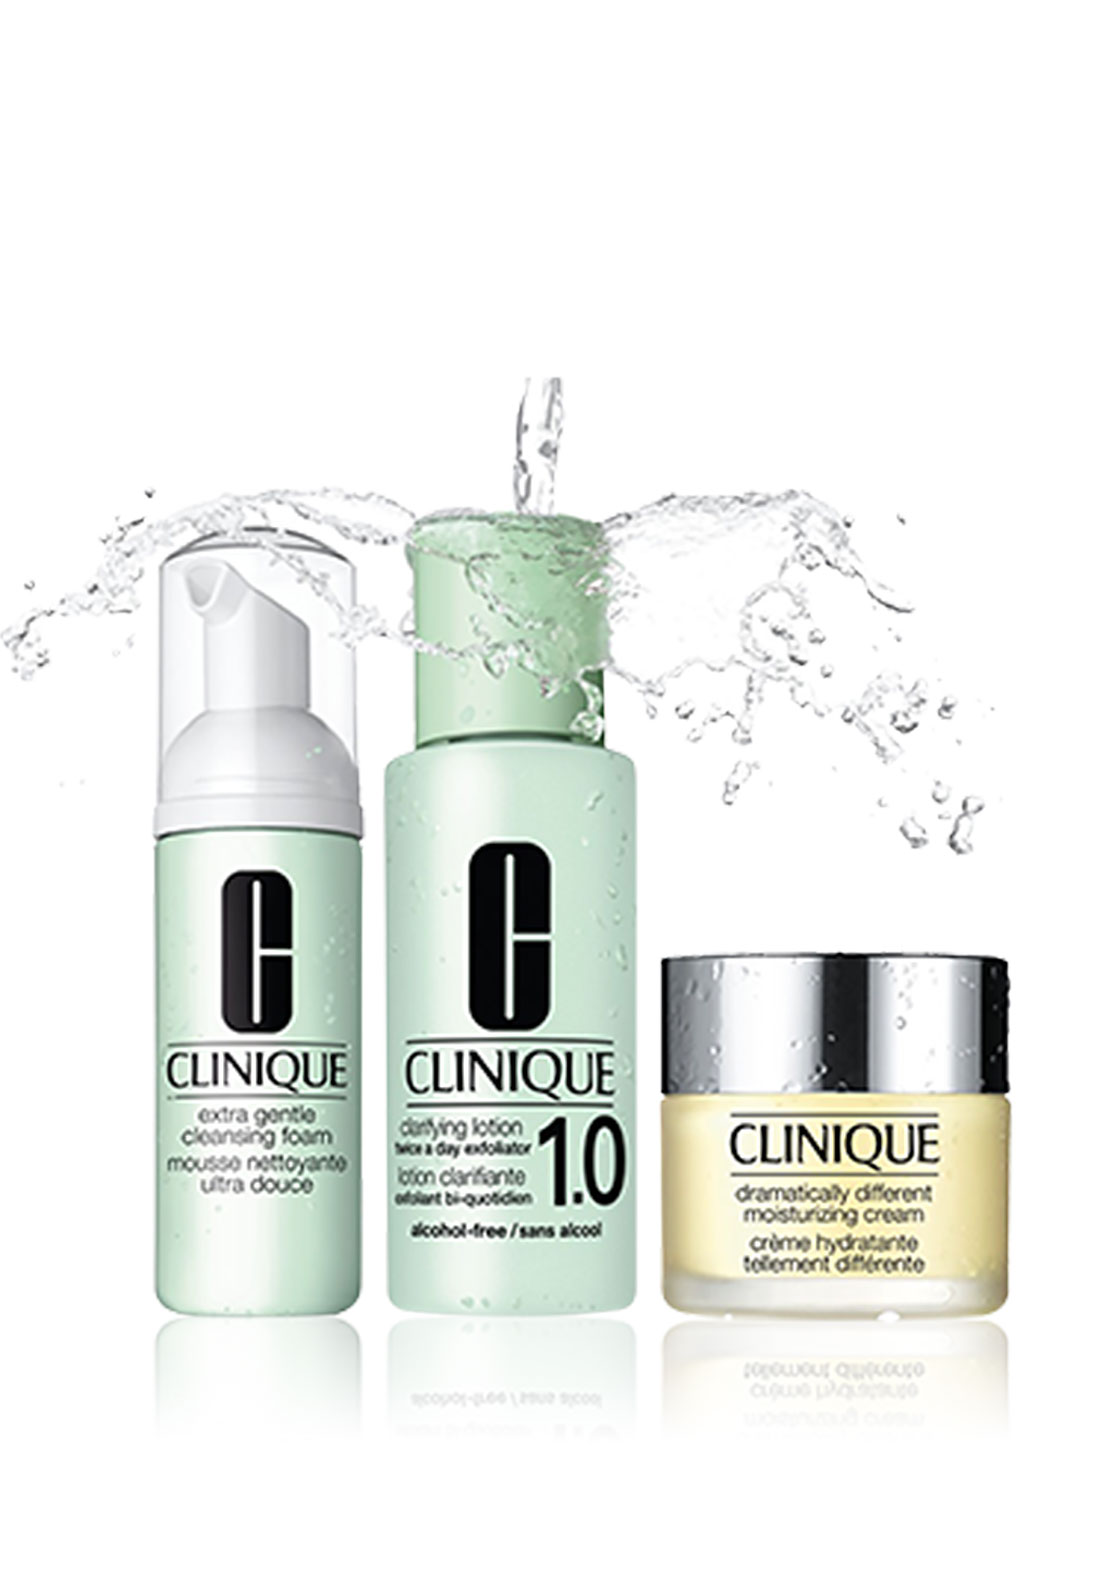 Clinique 3 Step System Gift Set, Skin Type 1 & 2